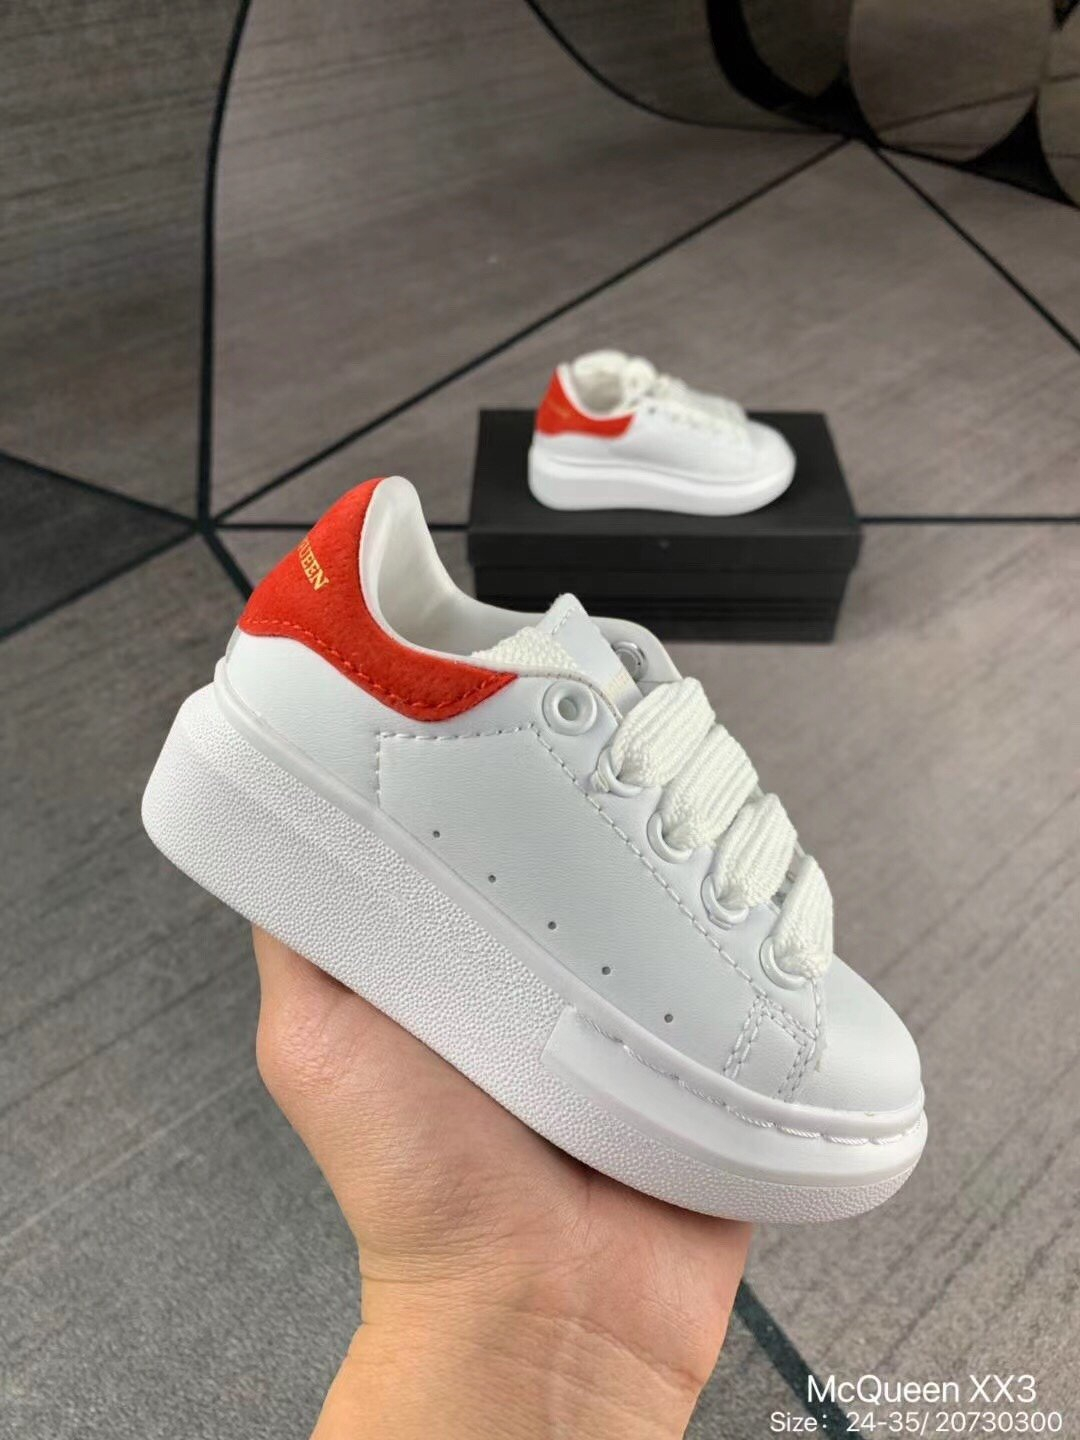 Image of McQueen Child Girls Boys shoes Children boots Baby Toddler Kids Child Fashion Casual Sneakers Sport Shoes